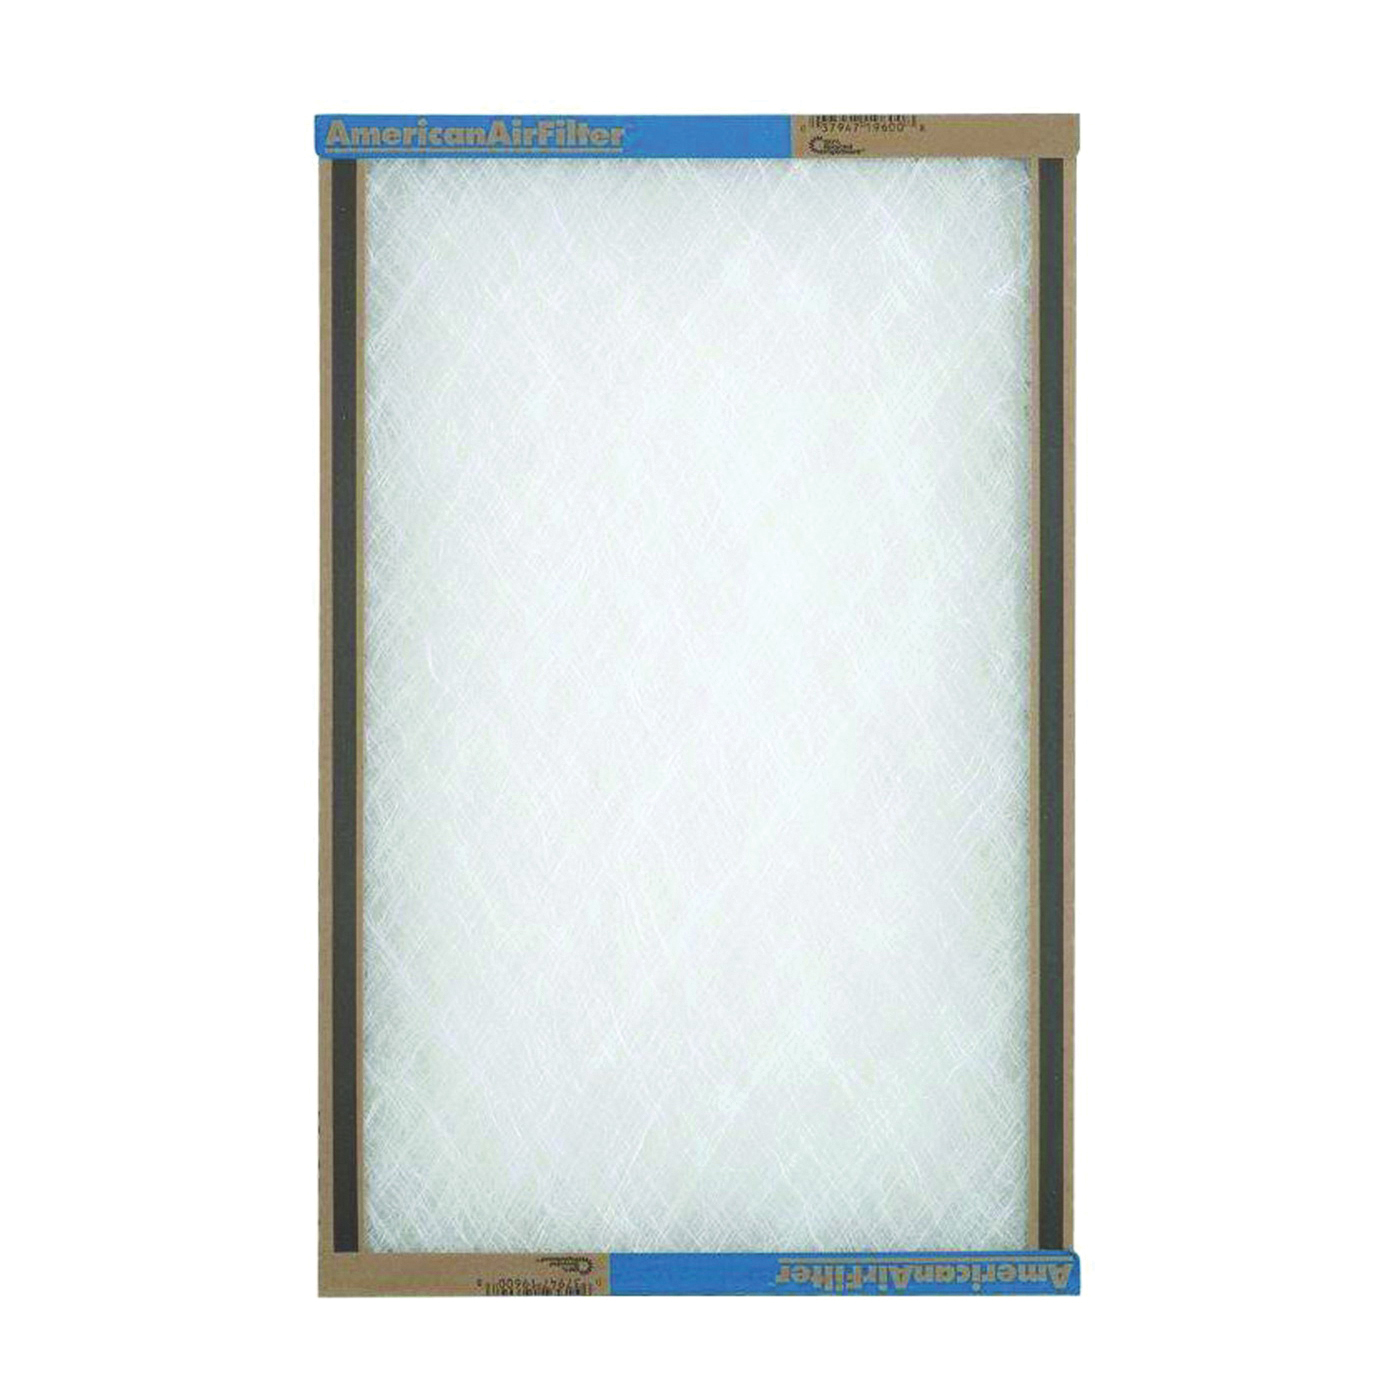 Picture of AAF 120301 Panel Filter, 30 in L, 20 in W, Chipboard Frame